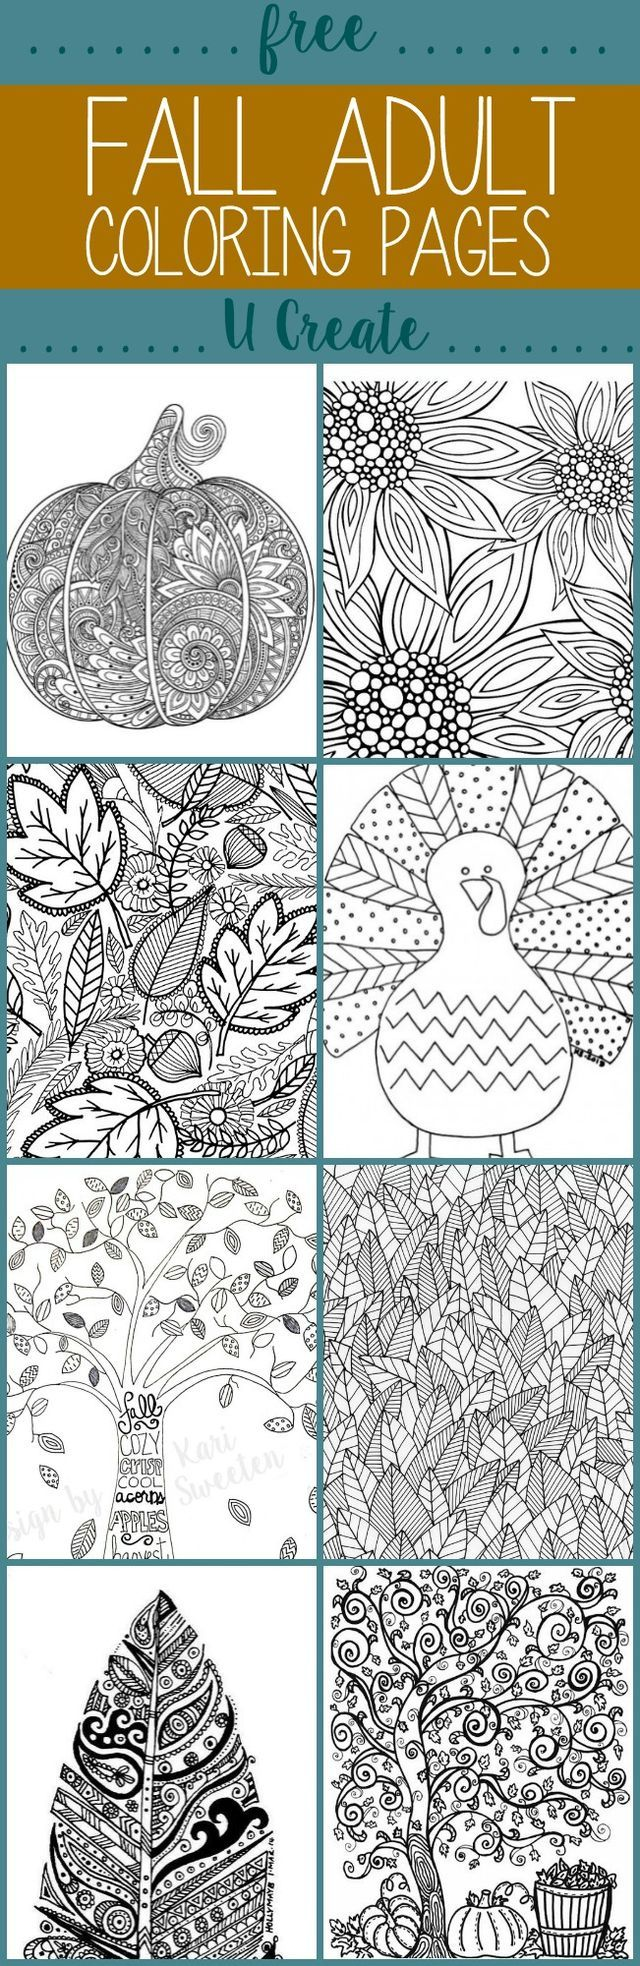 Adult Coloring Pages Are Everywhere Lately And I Think Its Because Not Only They FUN